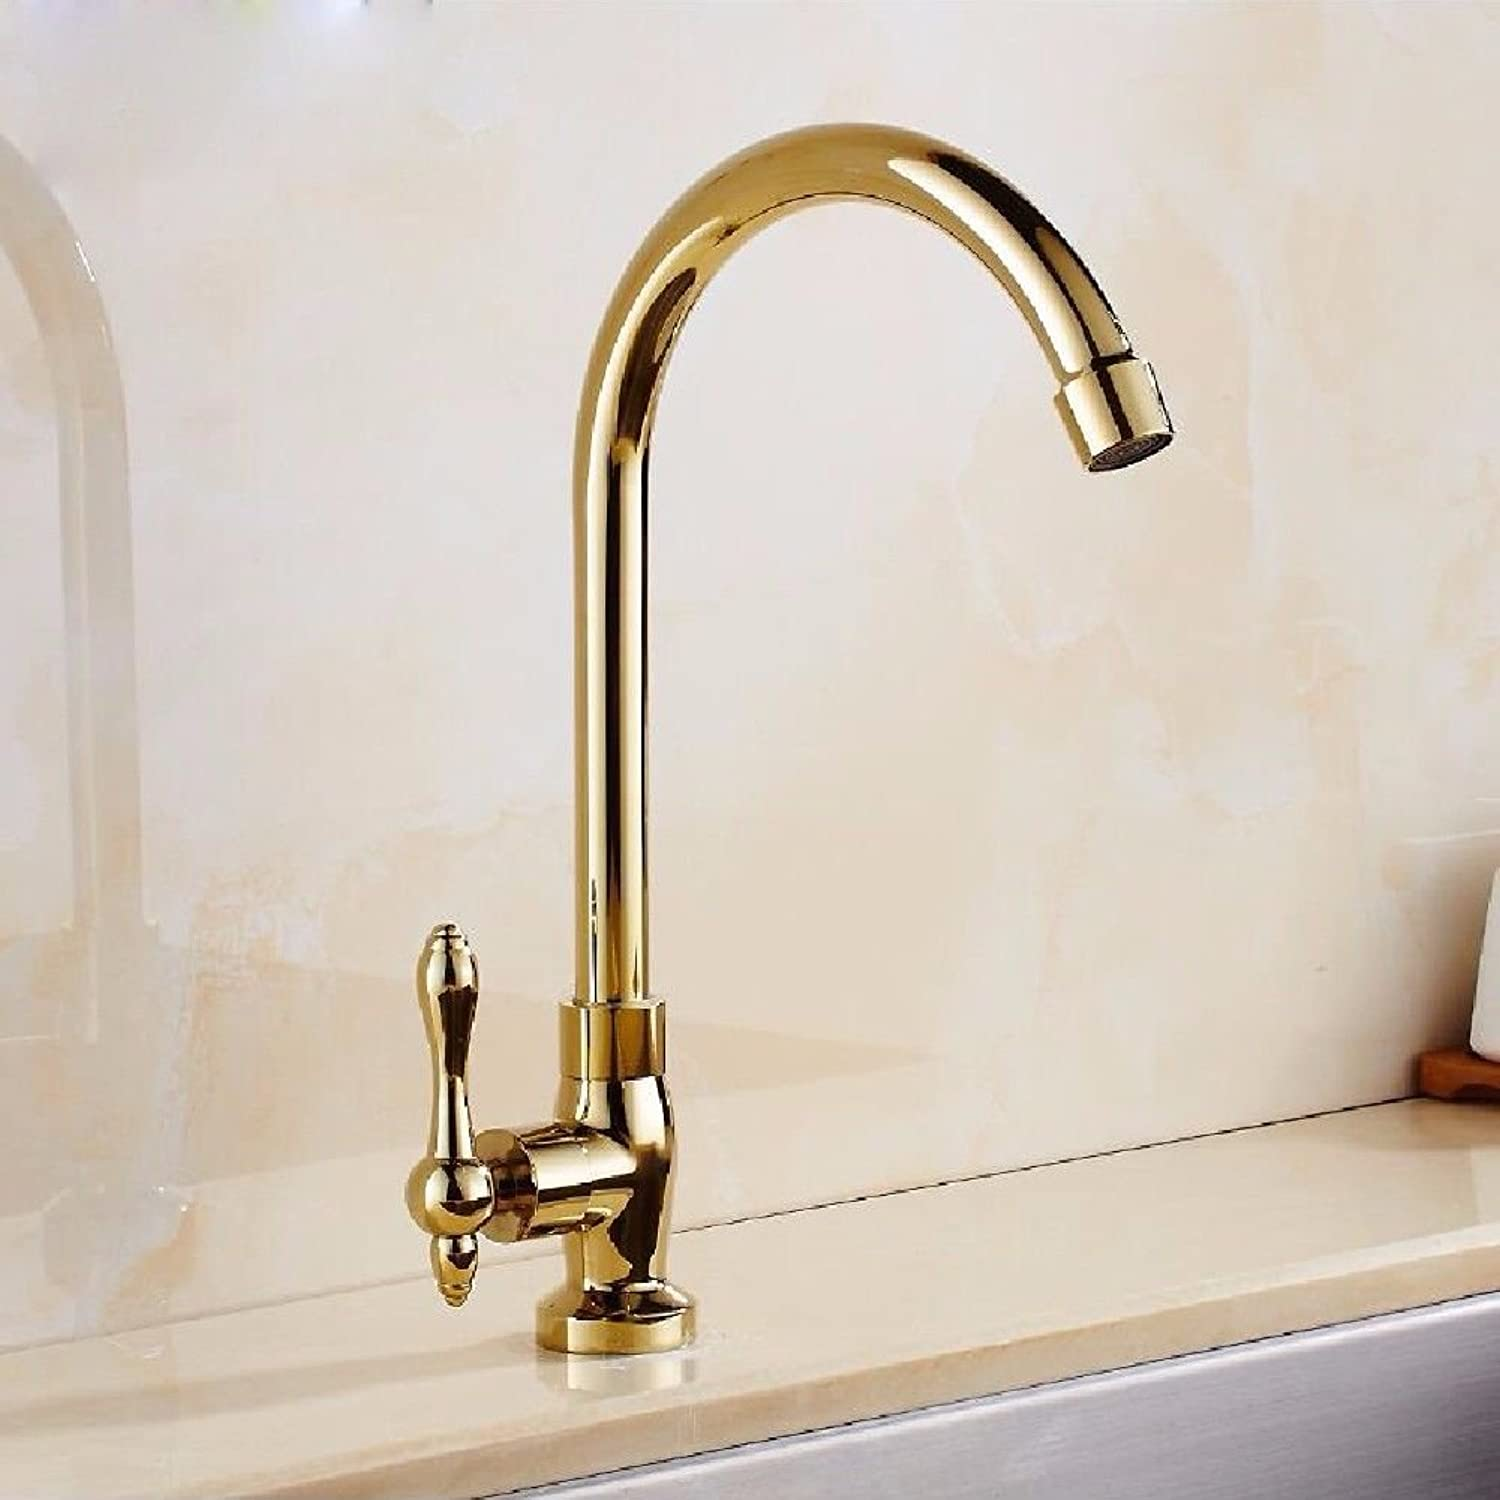 Lalaky Taps Faucet Kitchen Mixer Sink Waterfall Bathroom Mixer Basin Mixer Tap for Kitchen Bathroom and Washroom Copper Single Cold redation